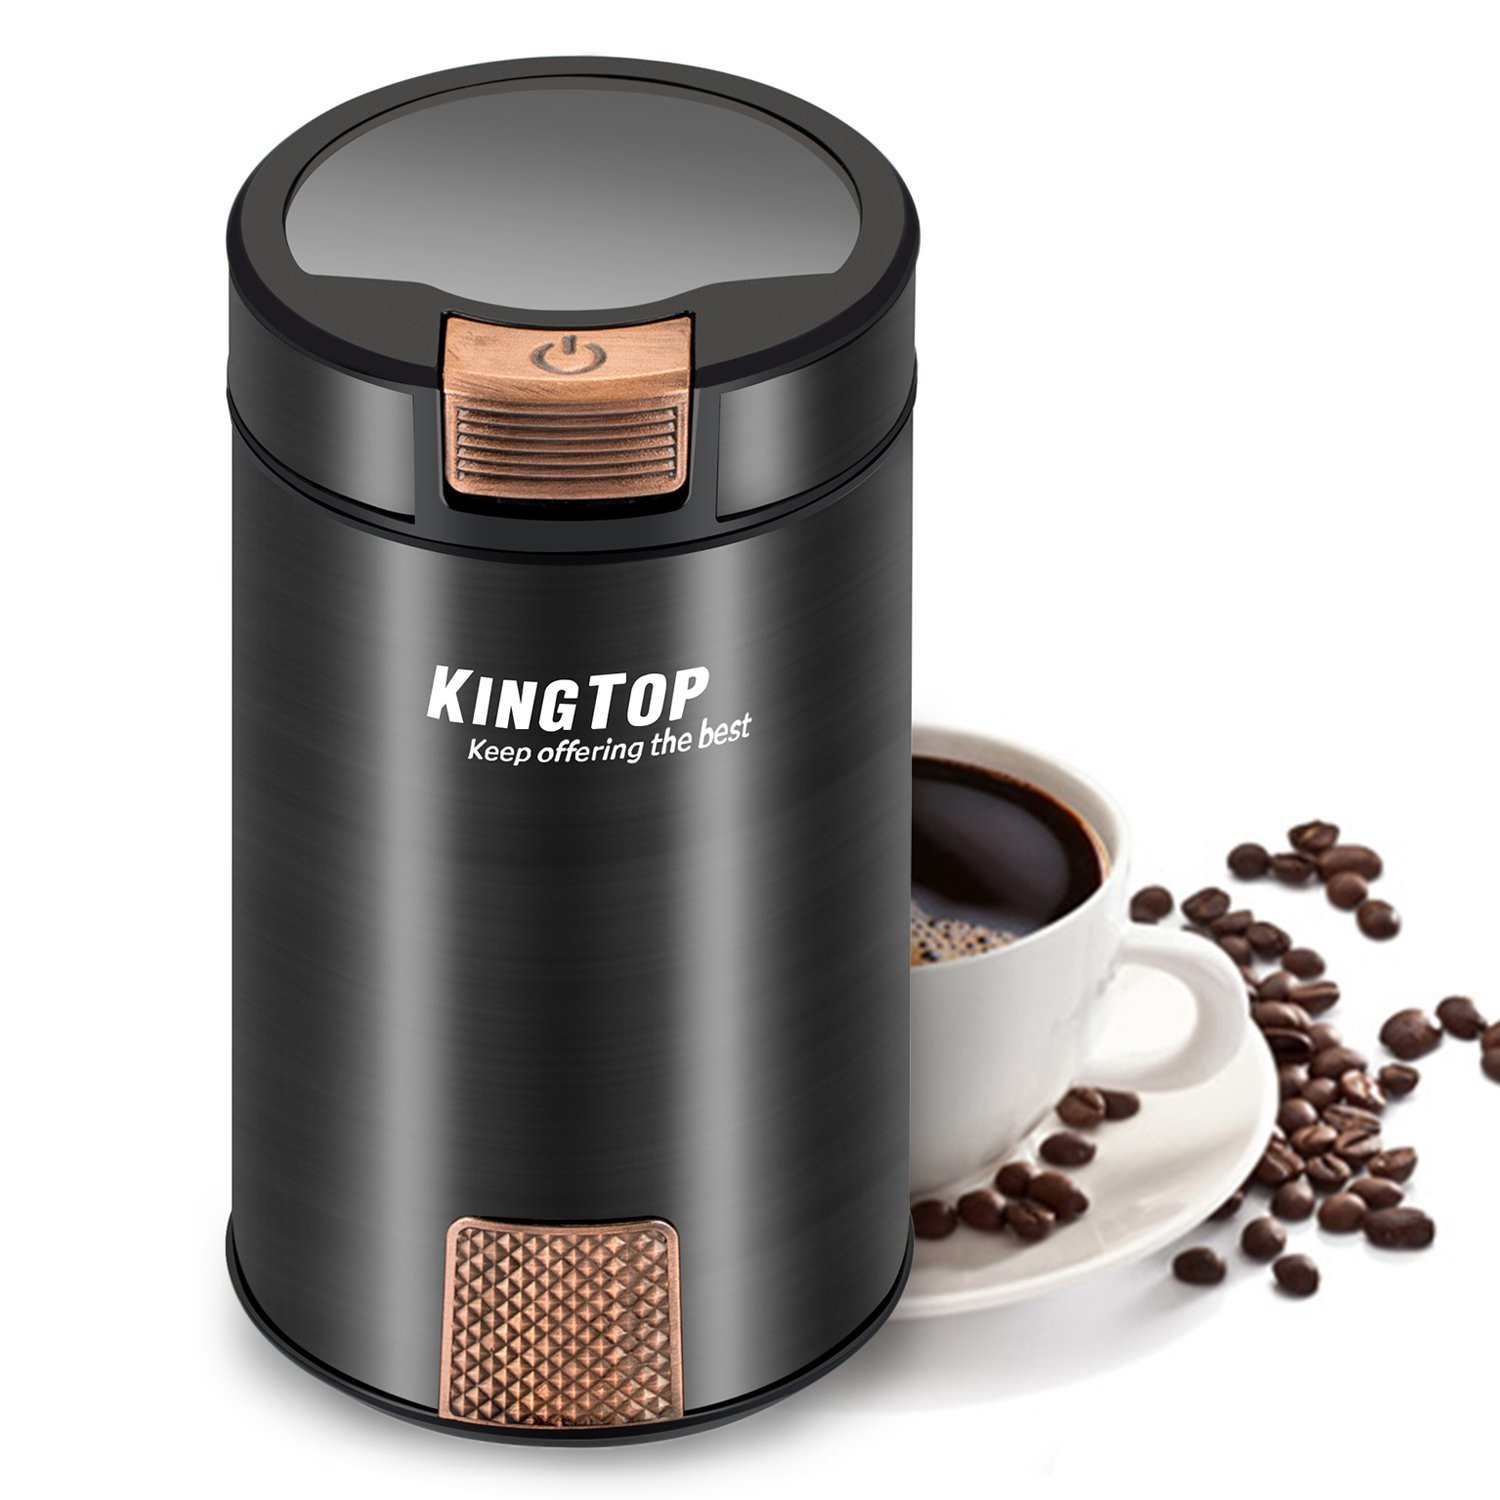 KINGTOP Electric 200W Coffee Grinder | Wright Reviews